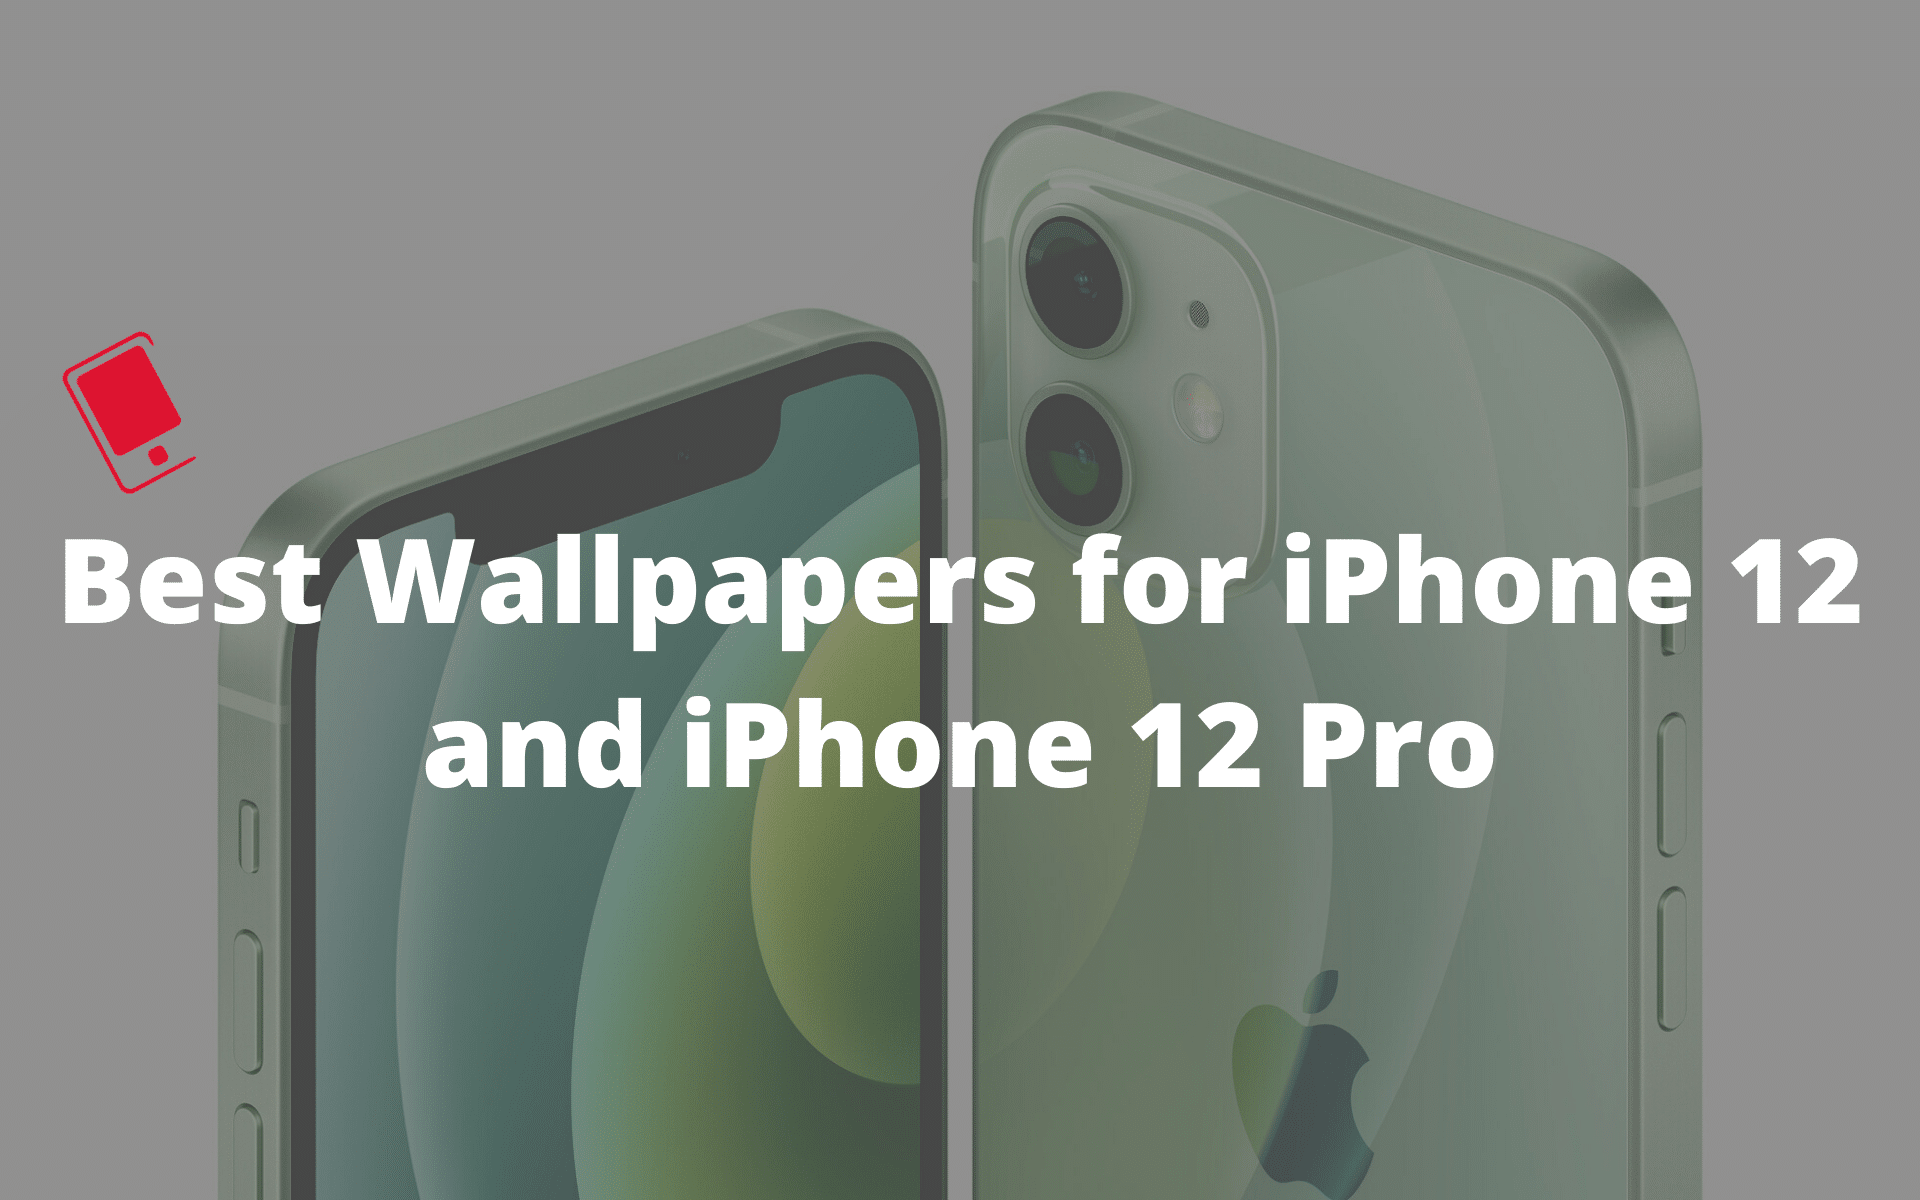 Best Wallpapers for iPhone 12 and iPhone 12 Pro